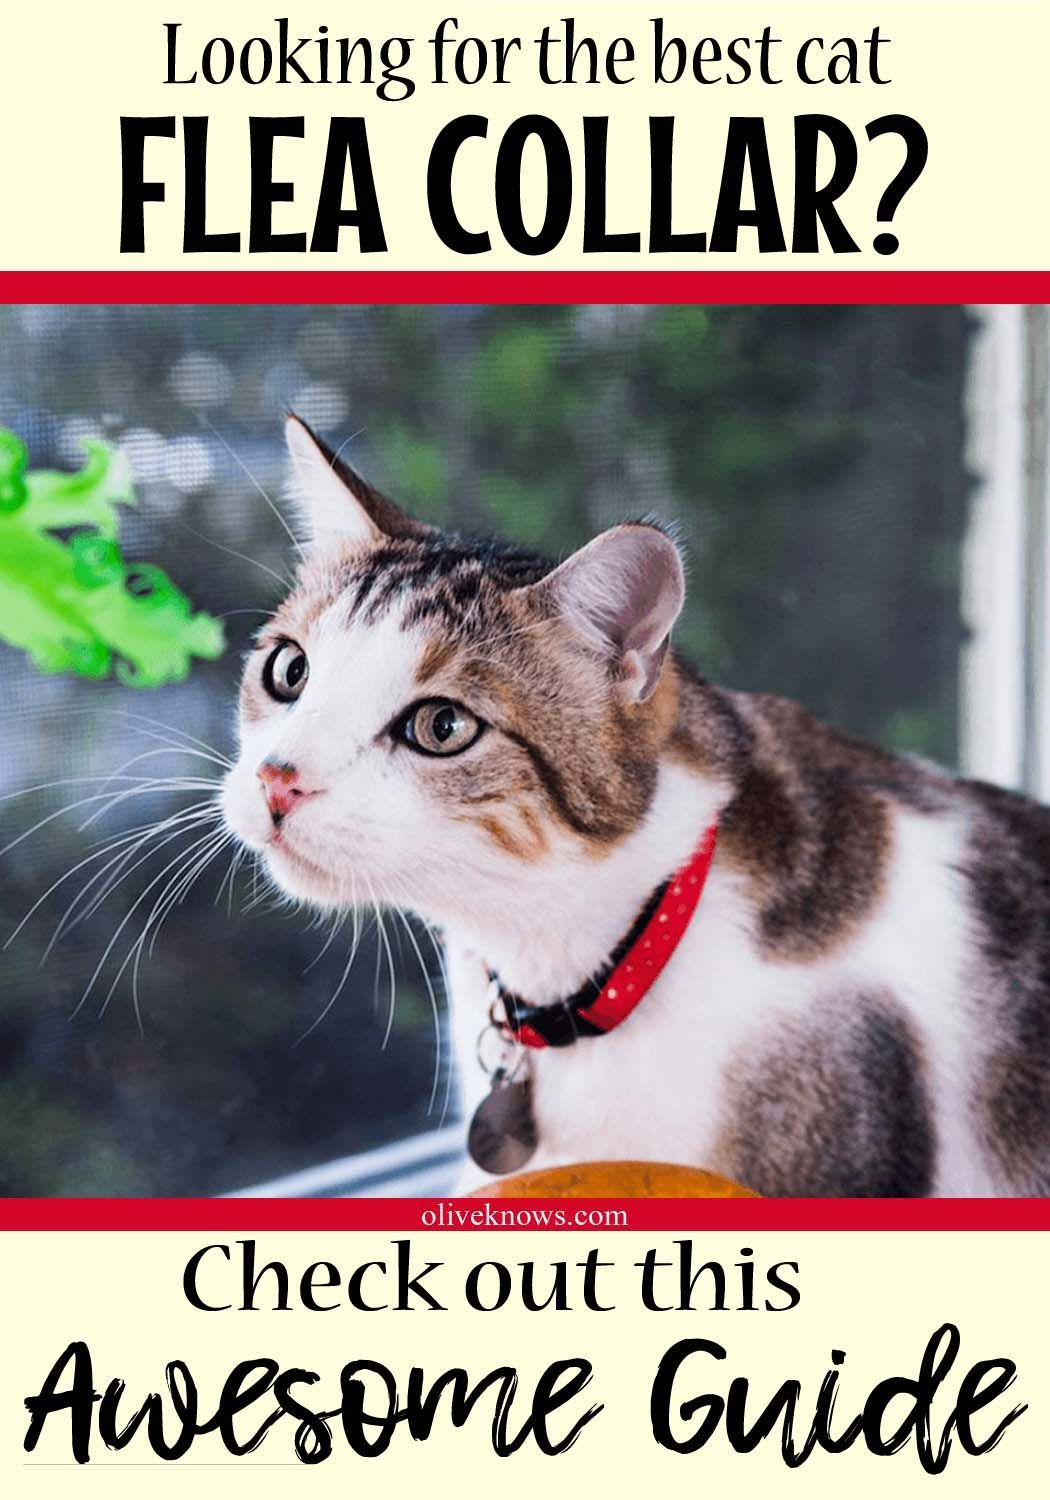 Best Flea Collar For Your Cat Oliveknows Cat Flea Collar Cat Fleas Flea Collar